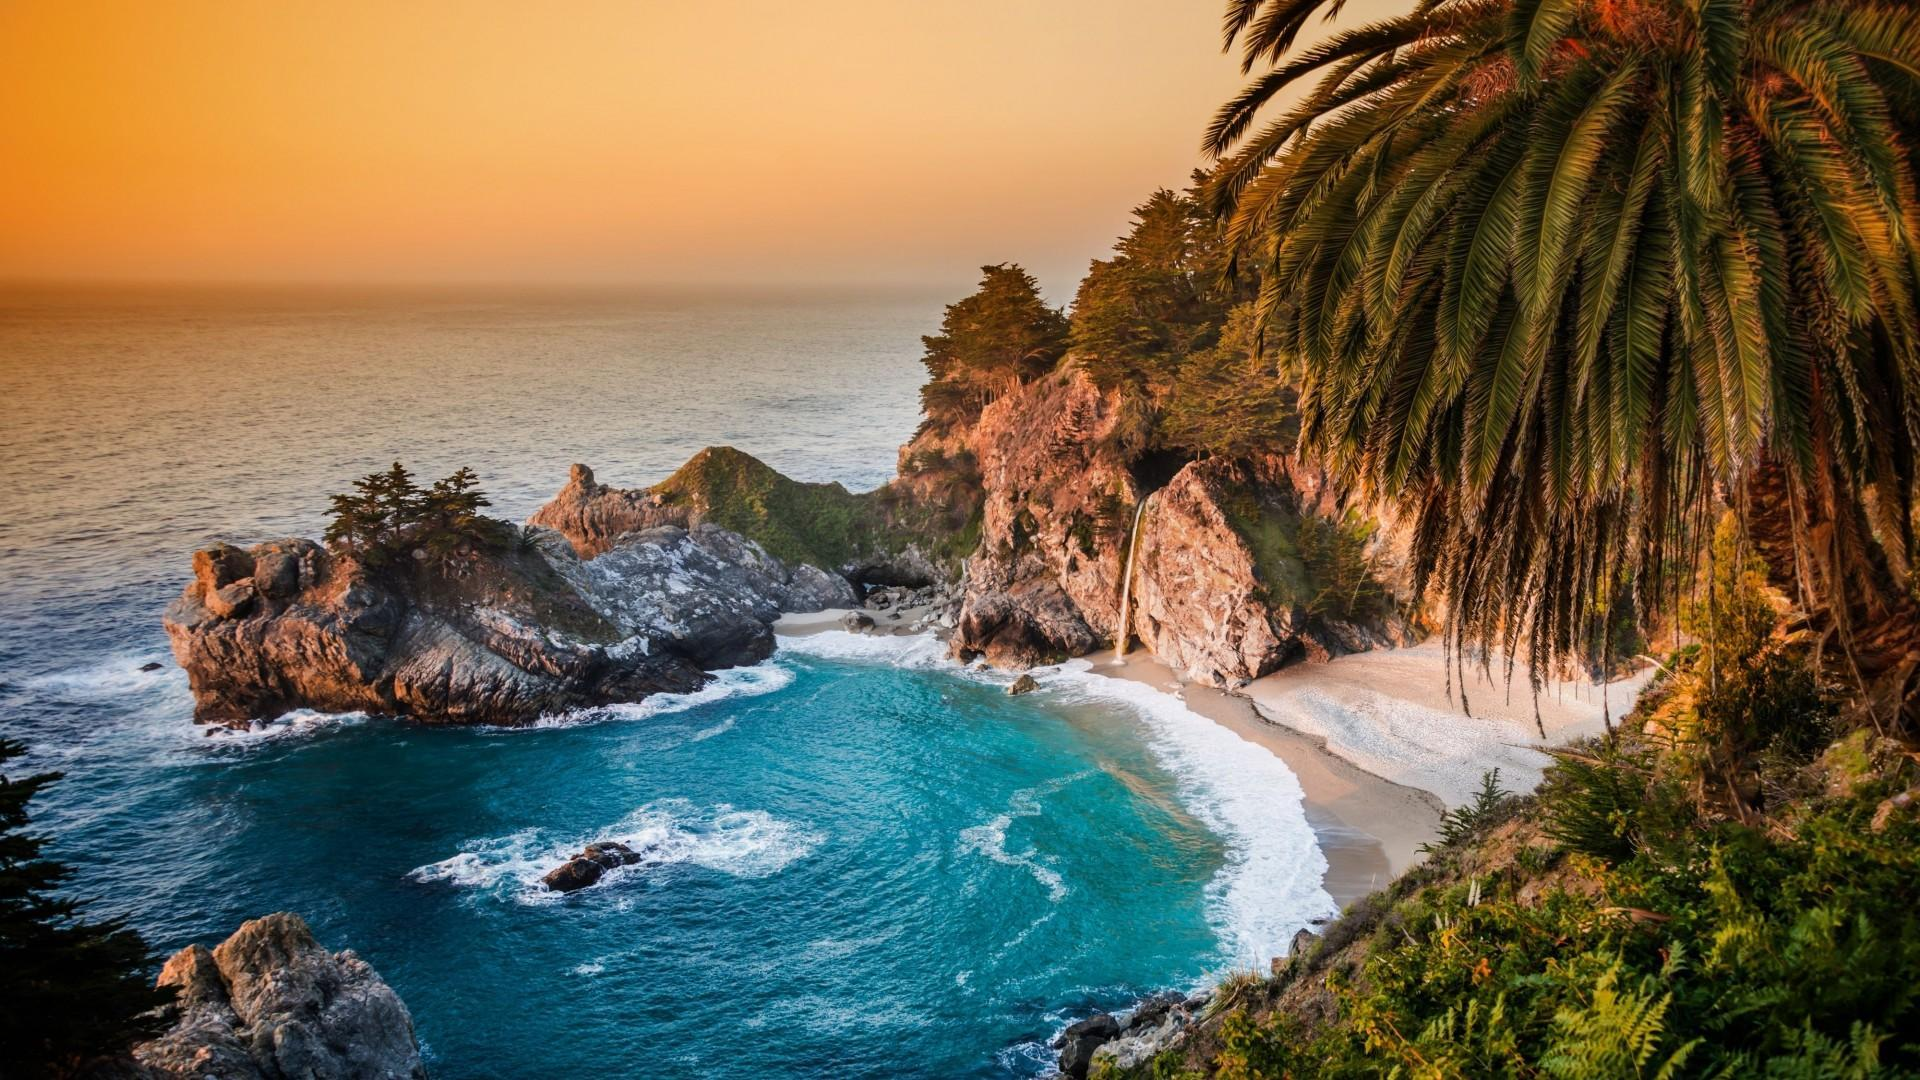 California Hd Live Wallpapers For Android Apk Download